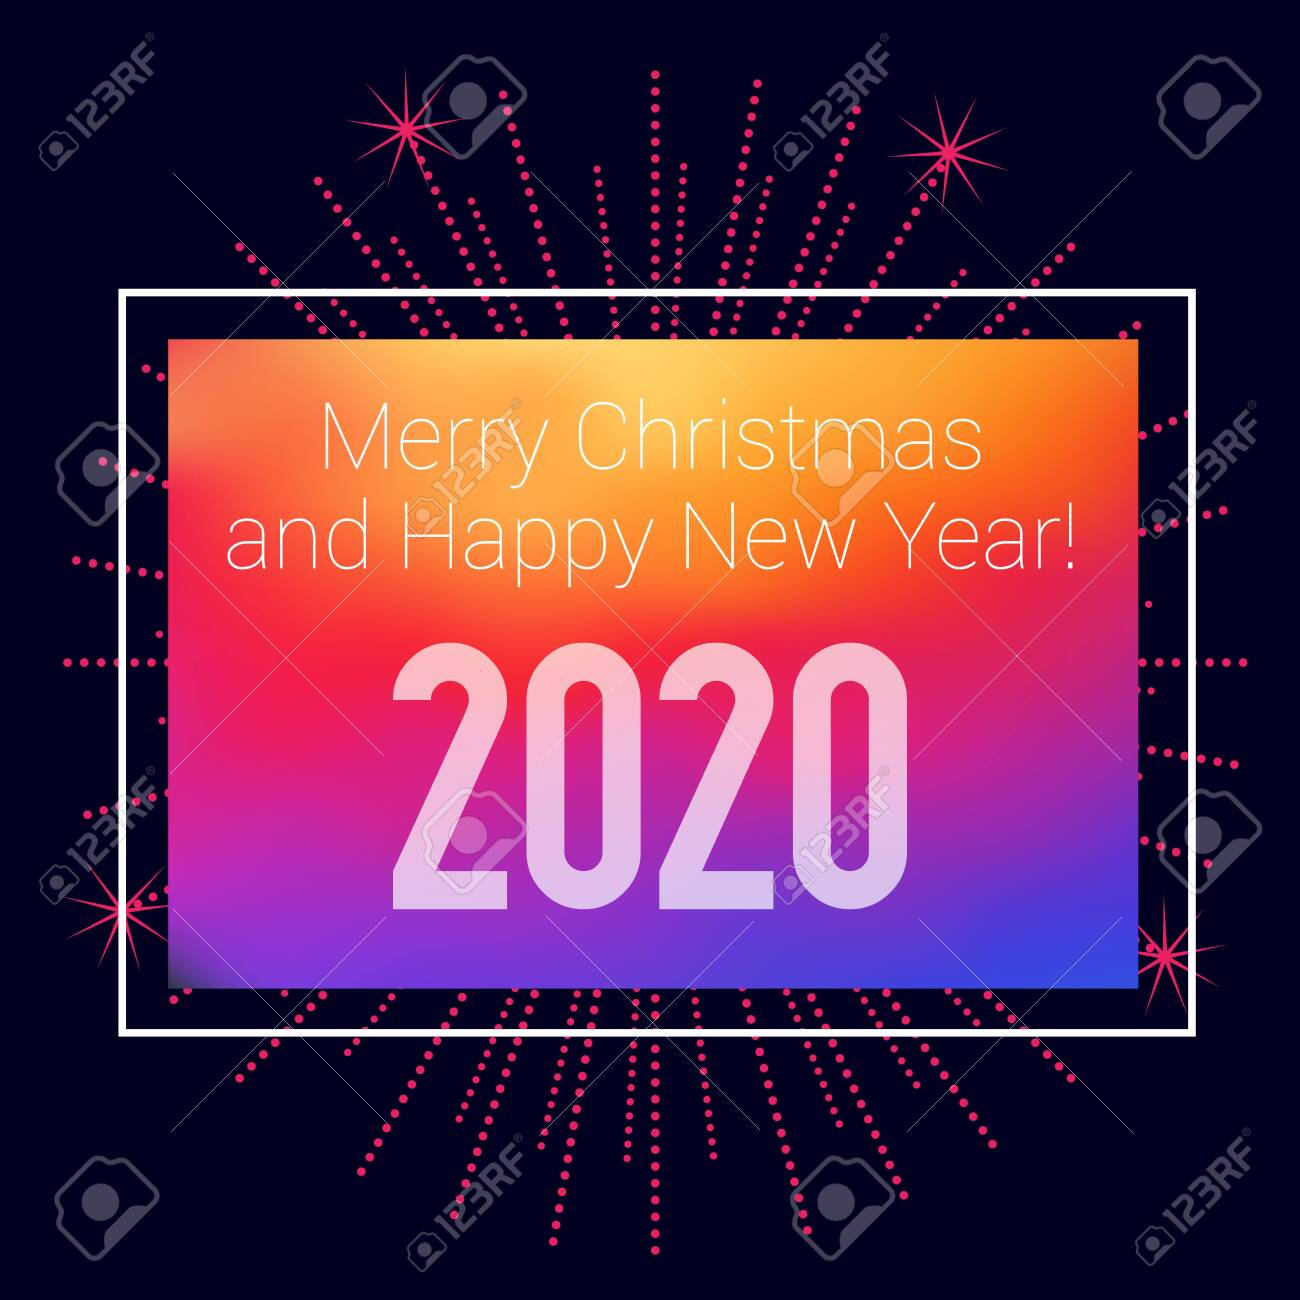 Merry Christmas Images 2020.2020 Merry Xmas Bright Background Merry Christmas And Happy